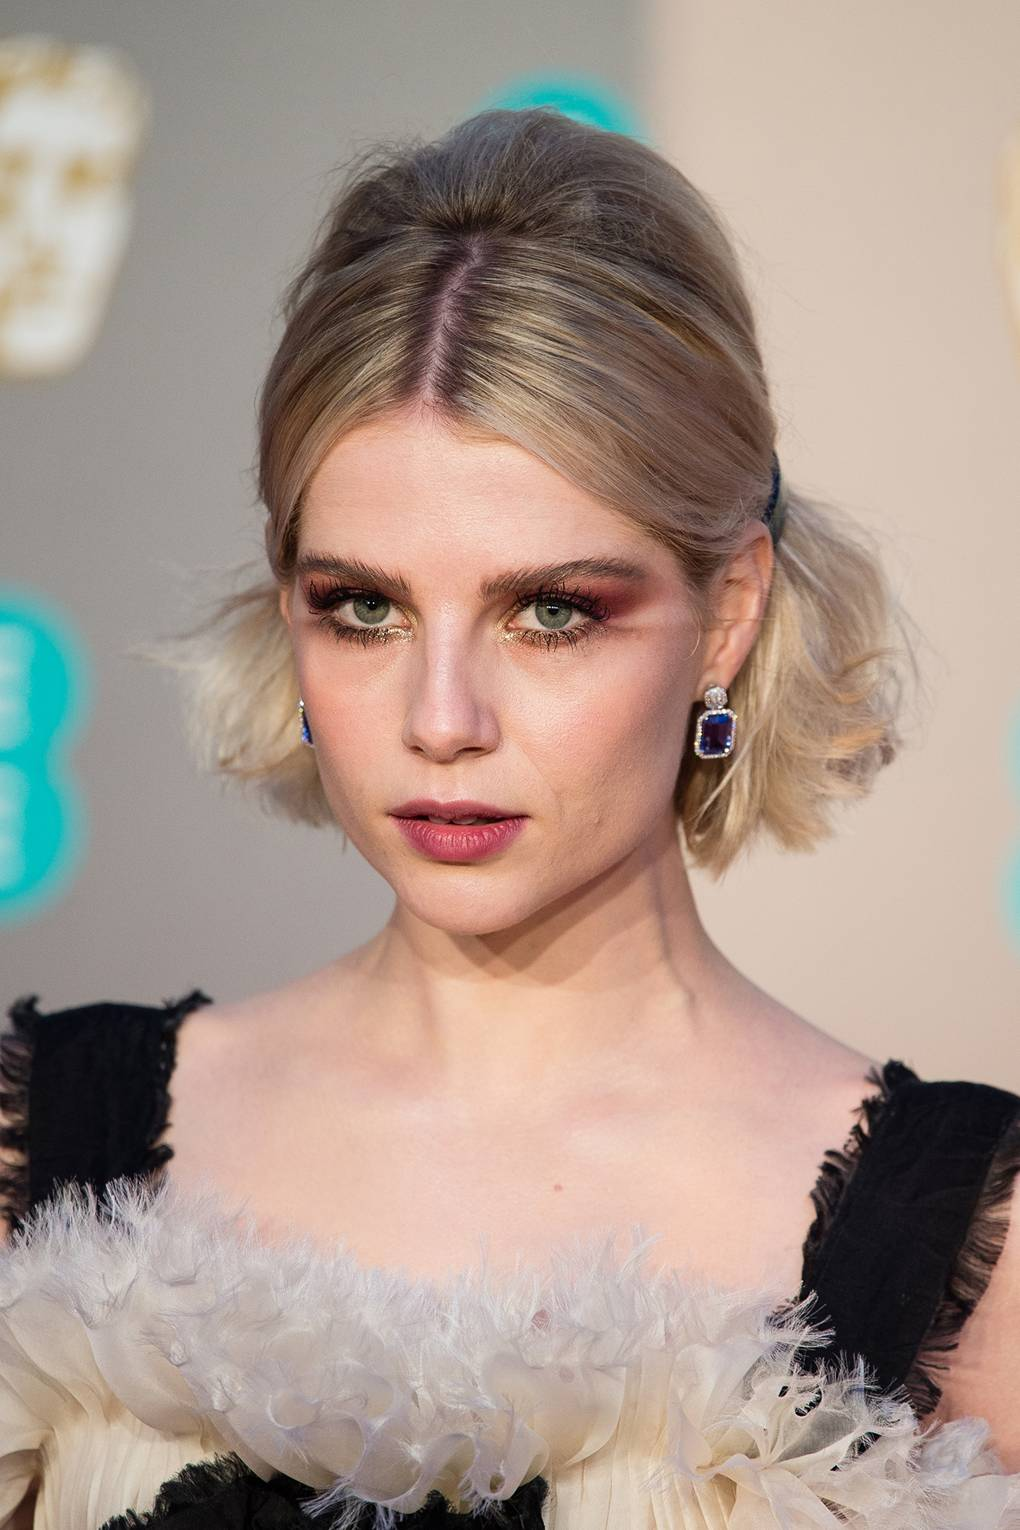 Hairstyles 2019: Hair Ideas, Cut And Colour Inspiration | Glamour UK